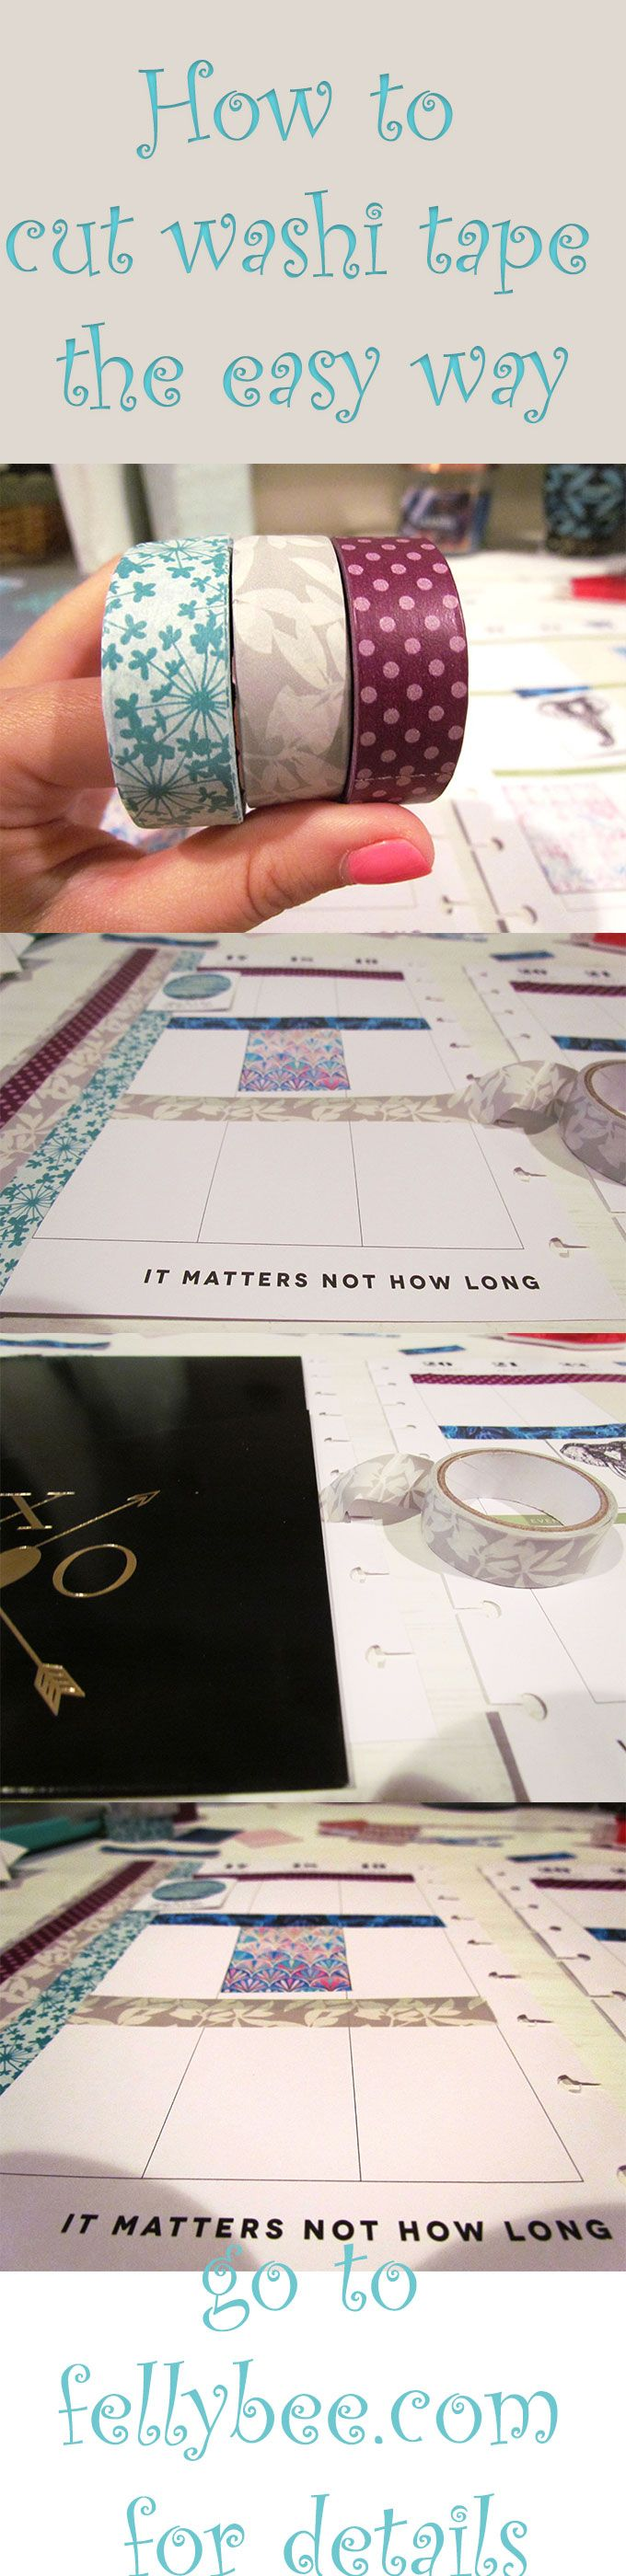 How to cut washi tape for glam